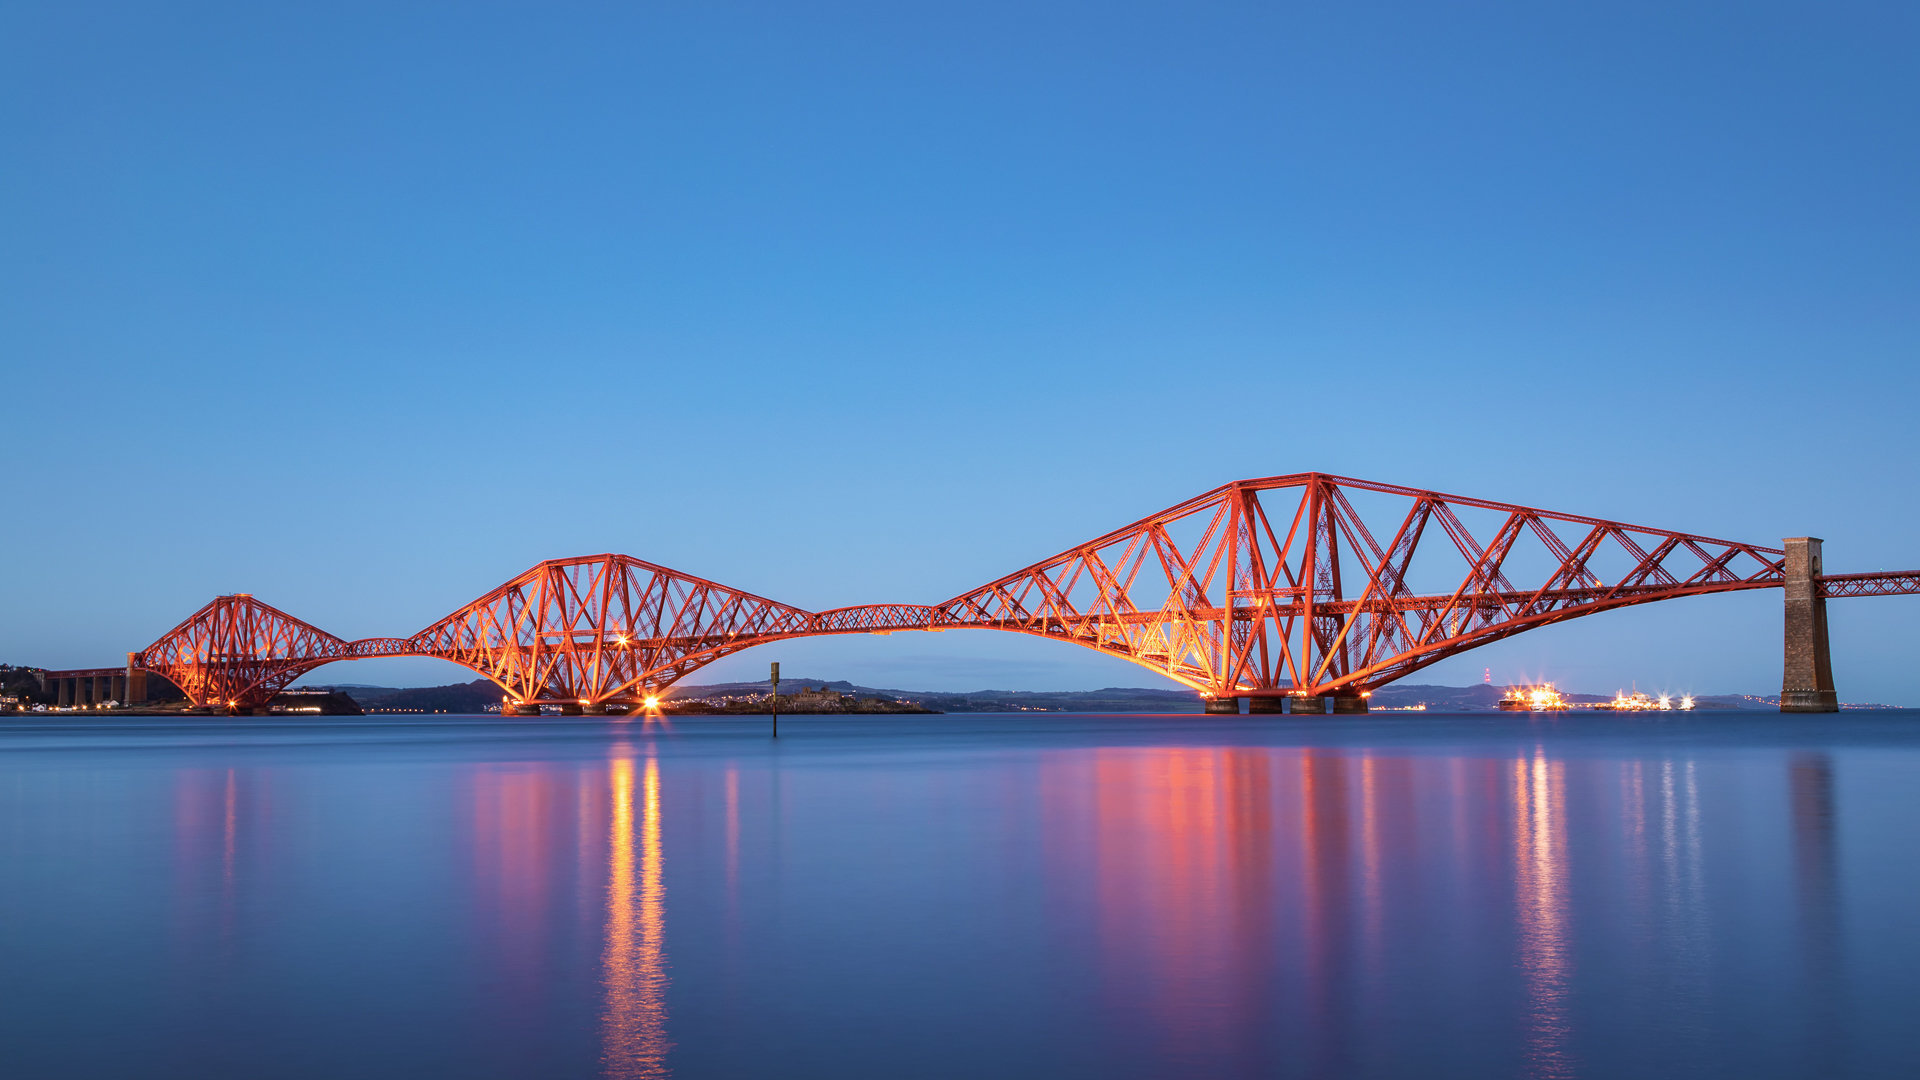 The Forth Bridge I